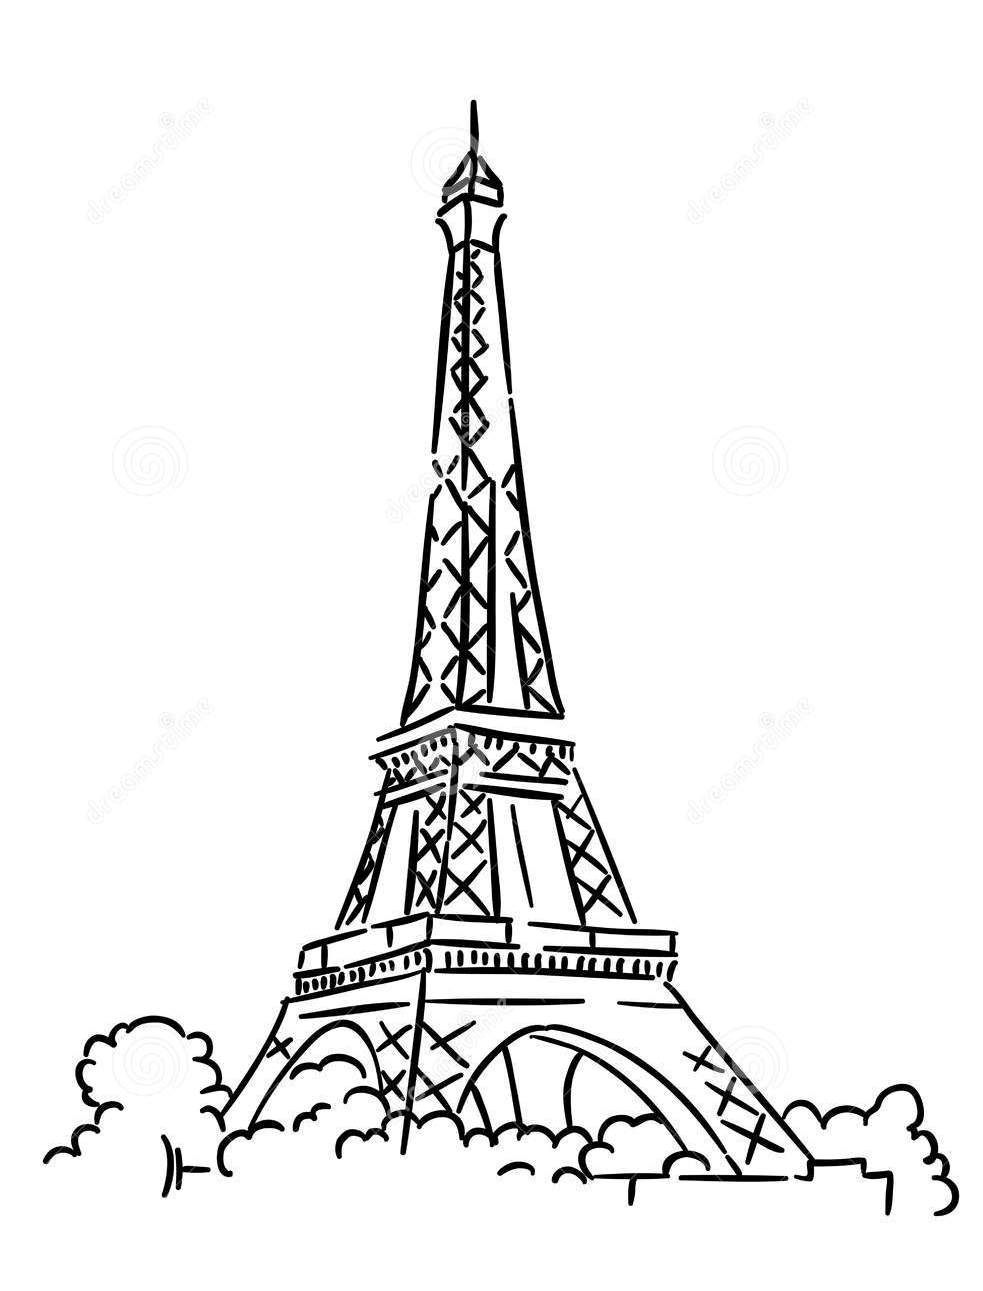 france eiffel tower coloring page - France Eiffel Tower Coloring Page